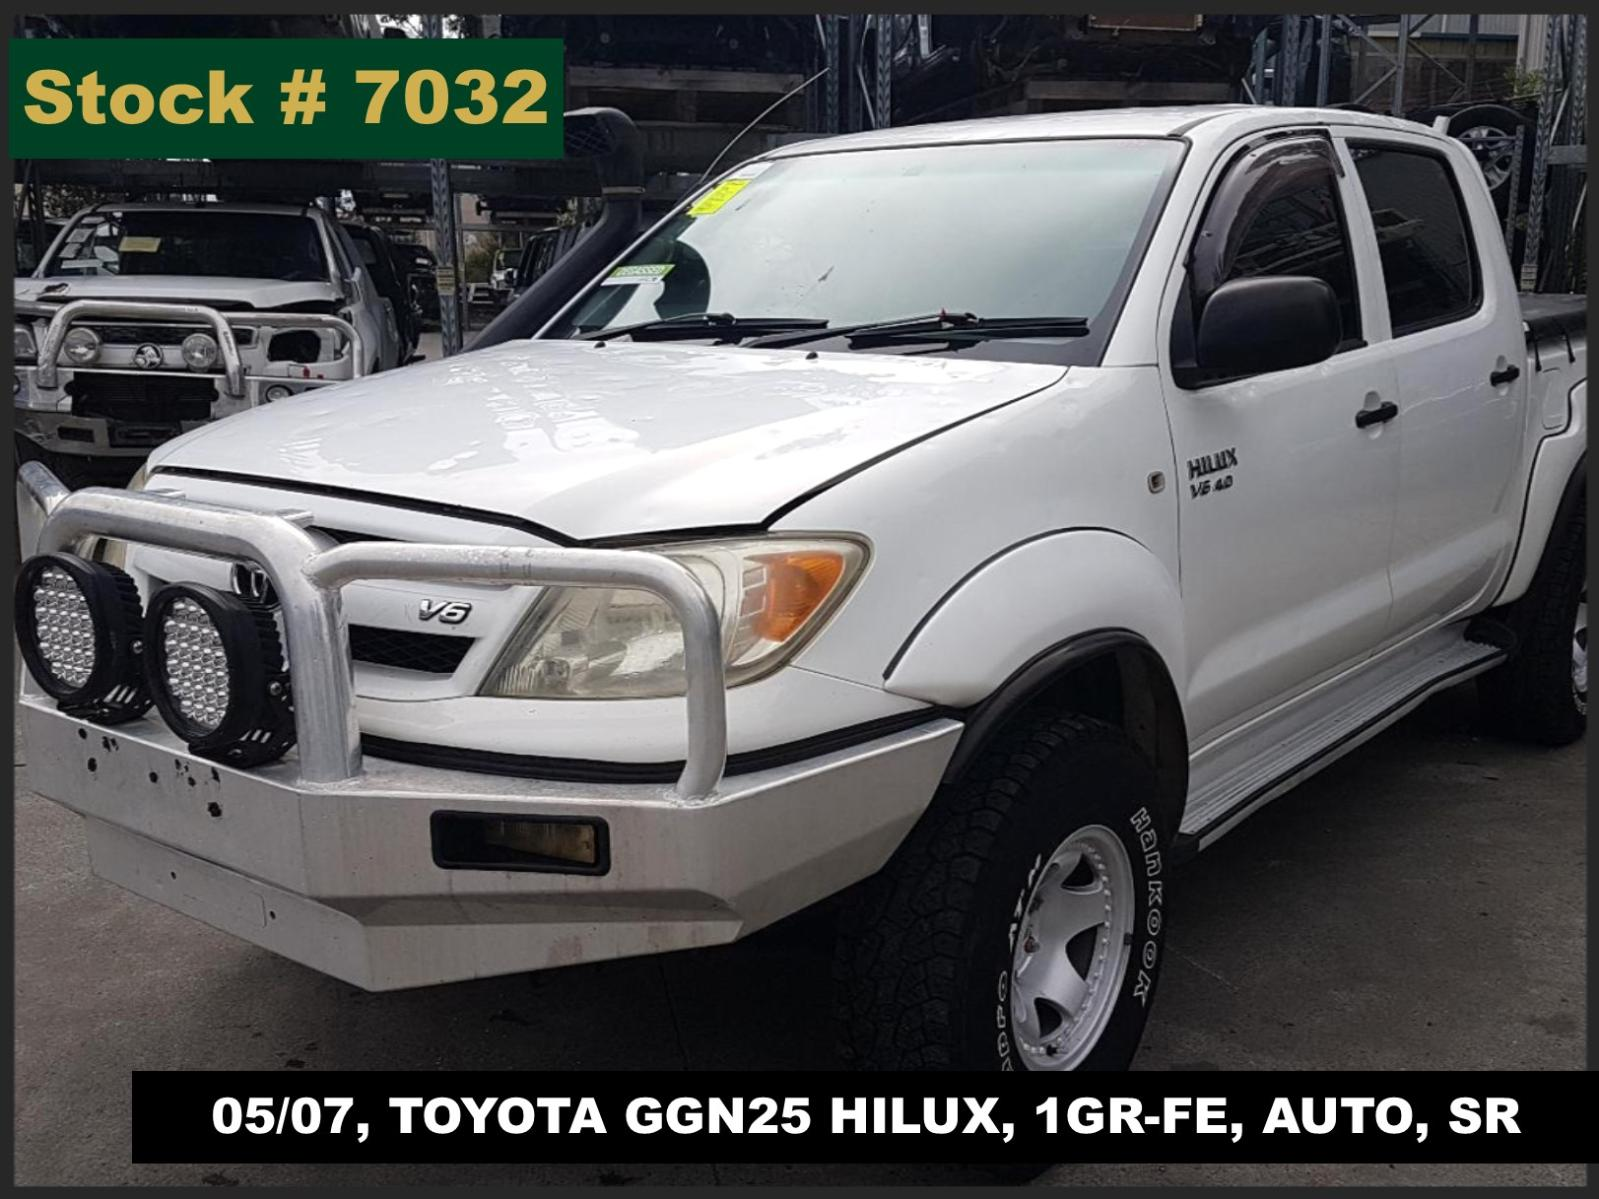 Image for a Toyota Hilux 2007 4 Door Pickup